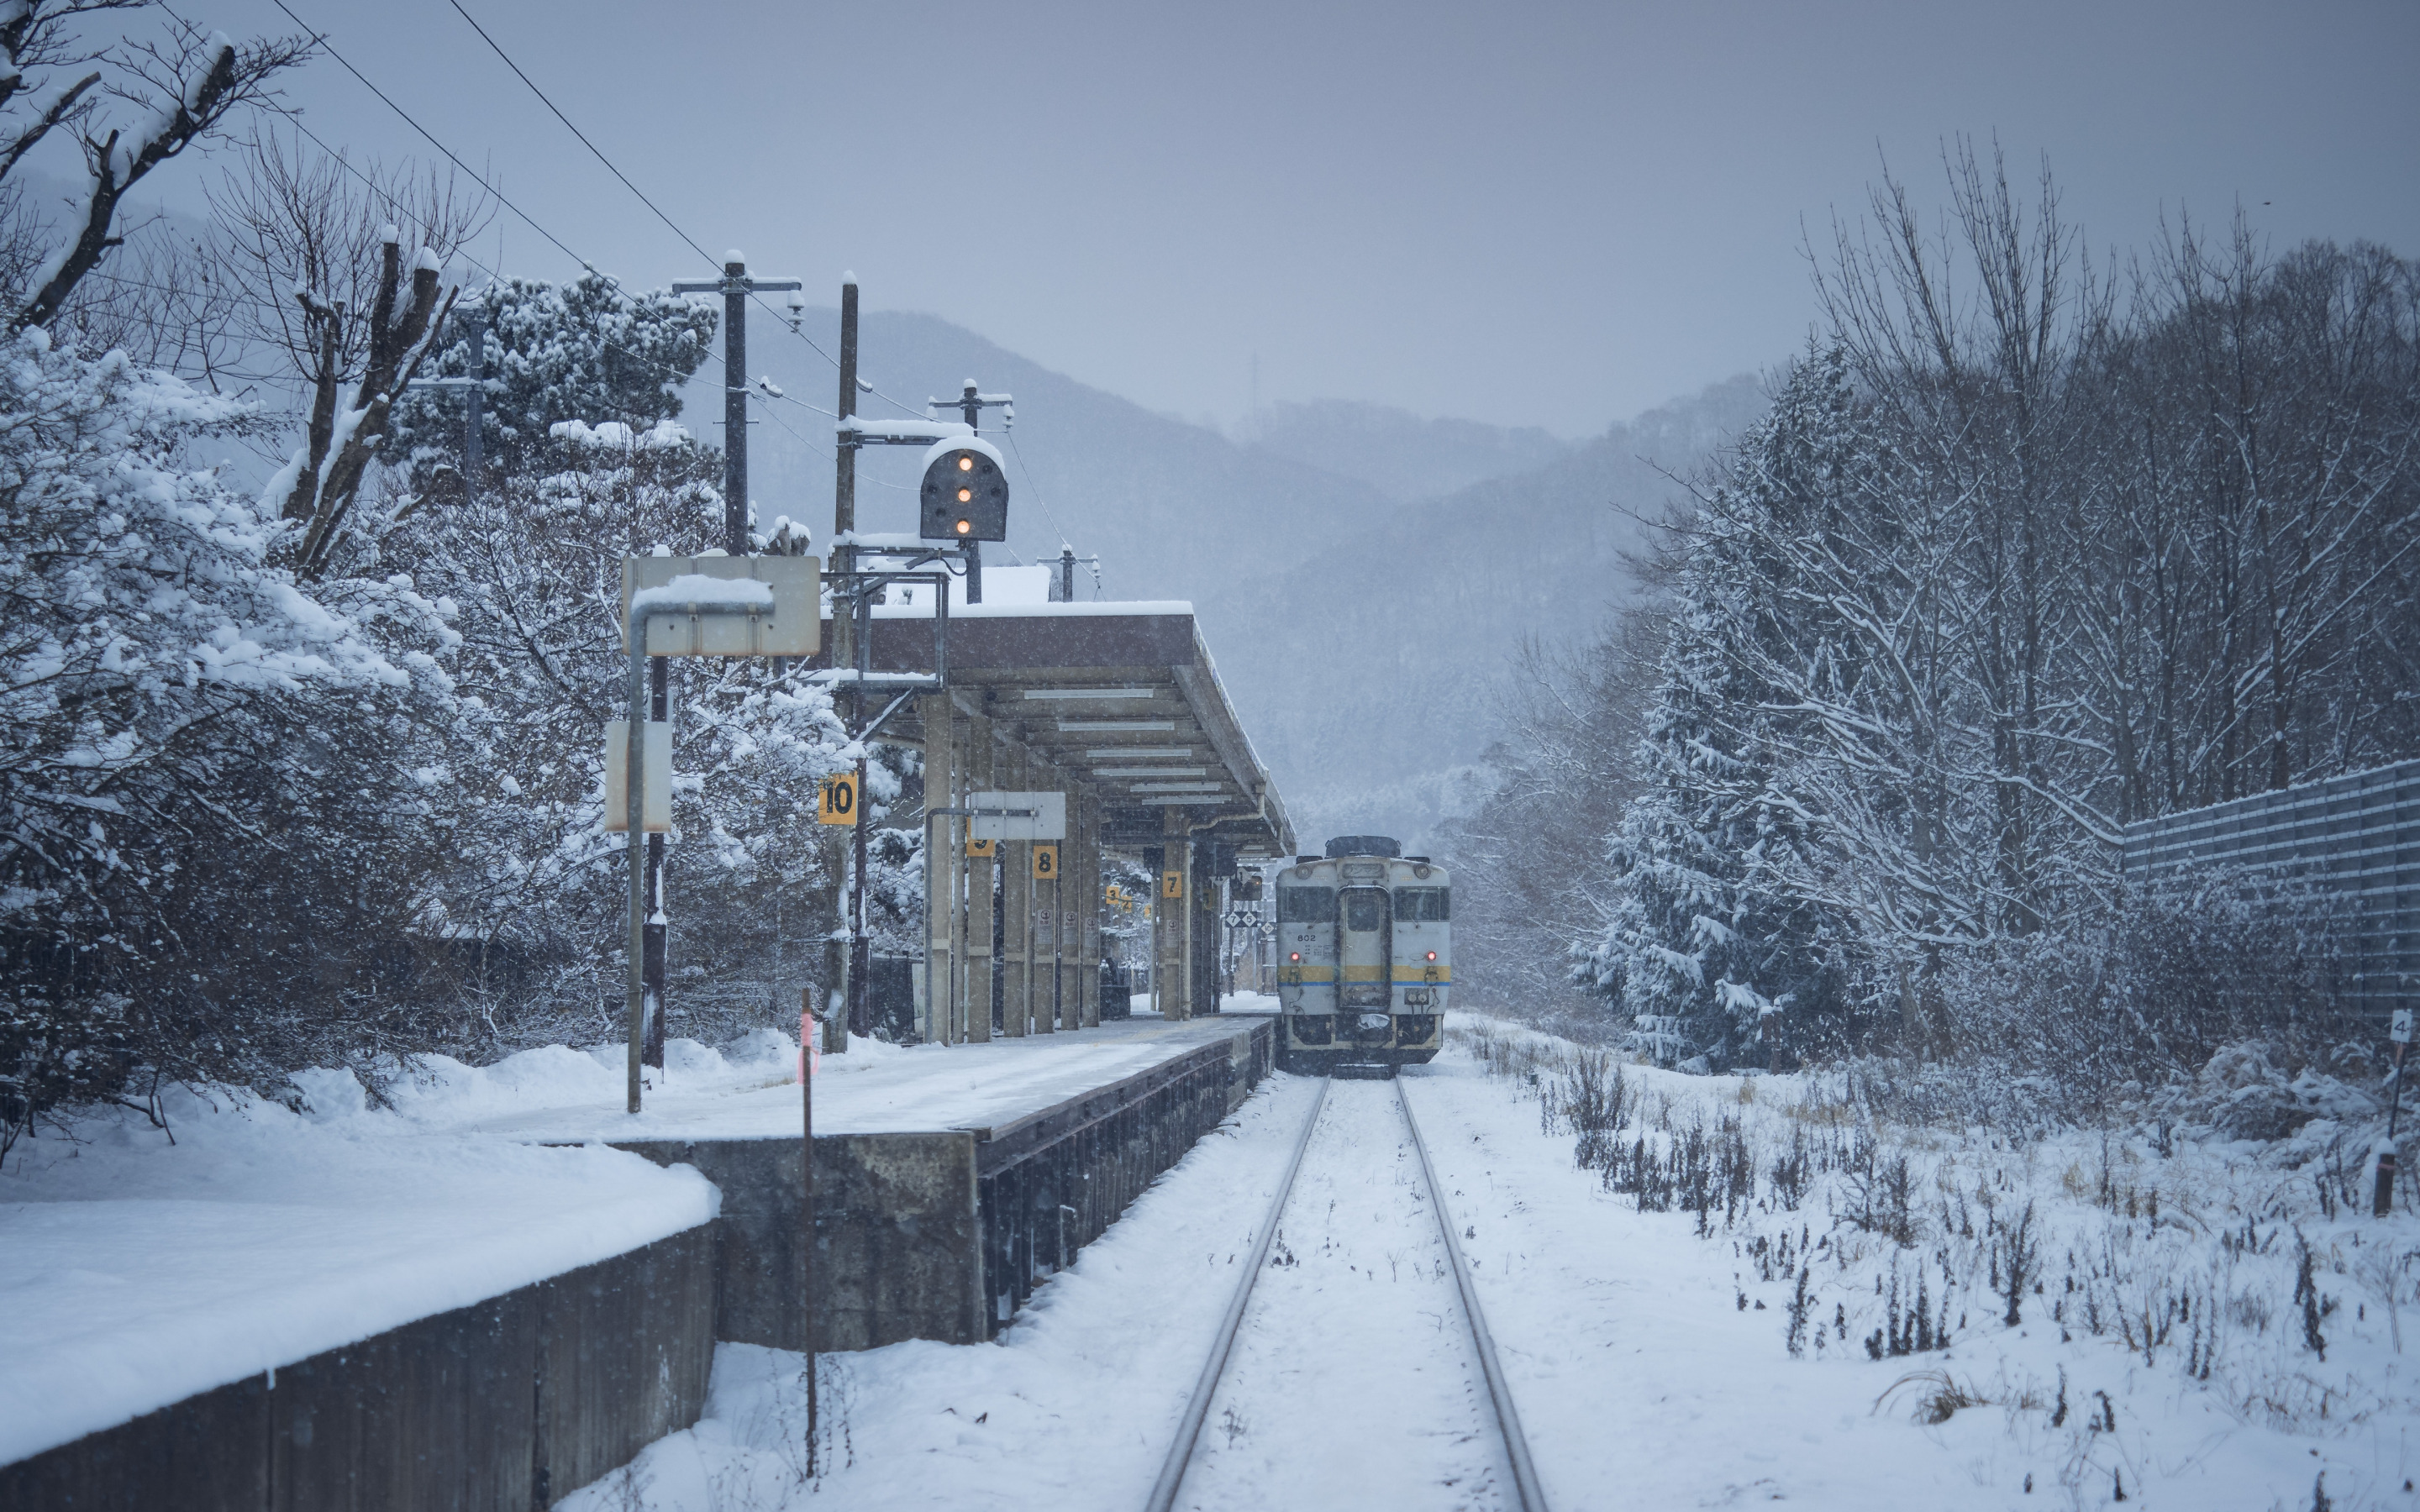 General 2880x1800 nature landscape winter snow trees forest snowing mountains railway Japan train train station